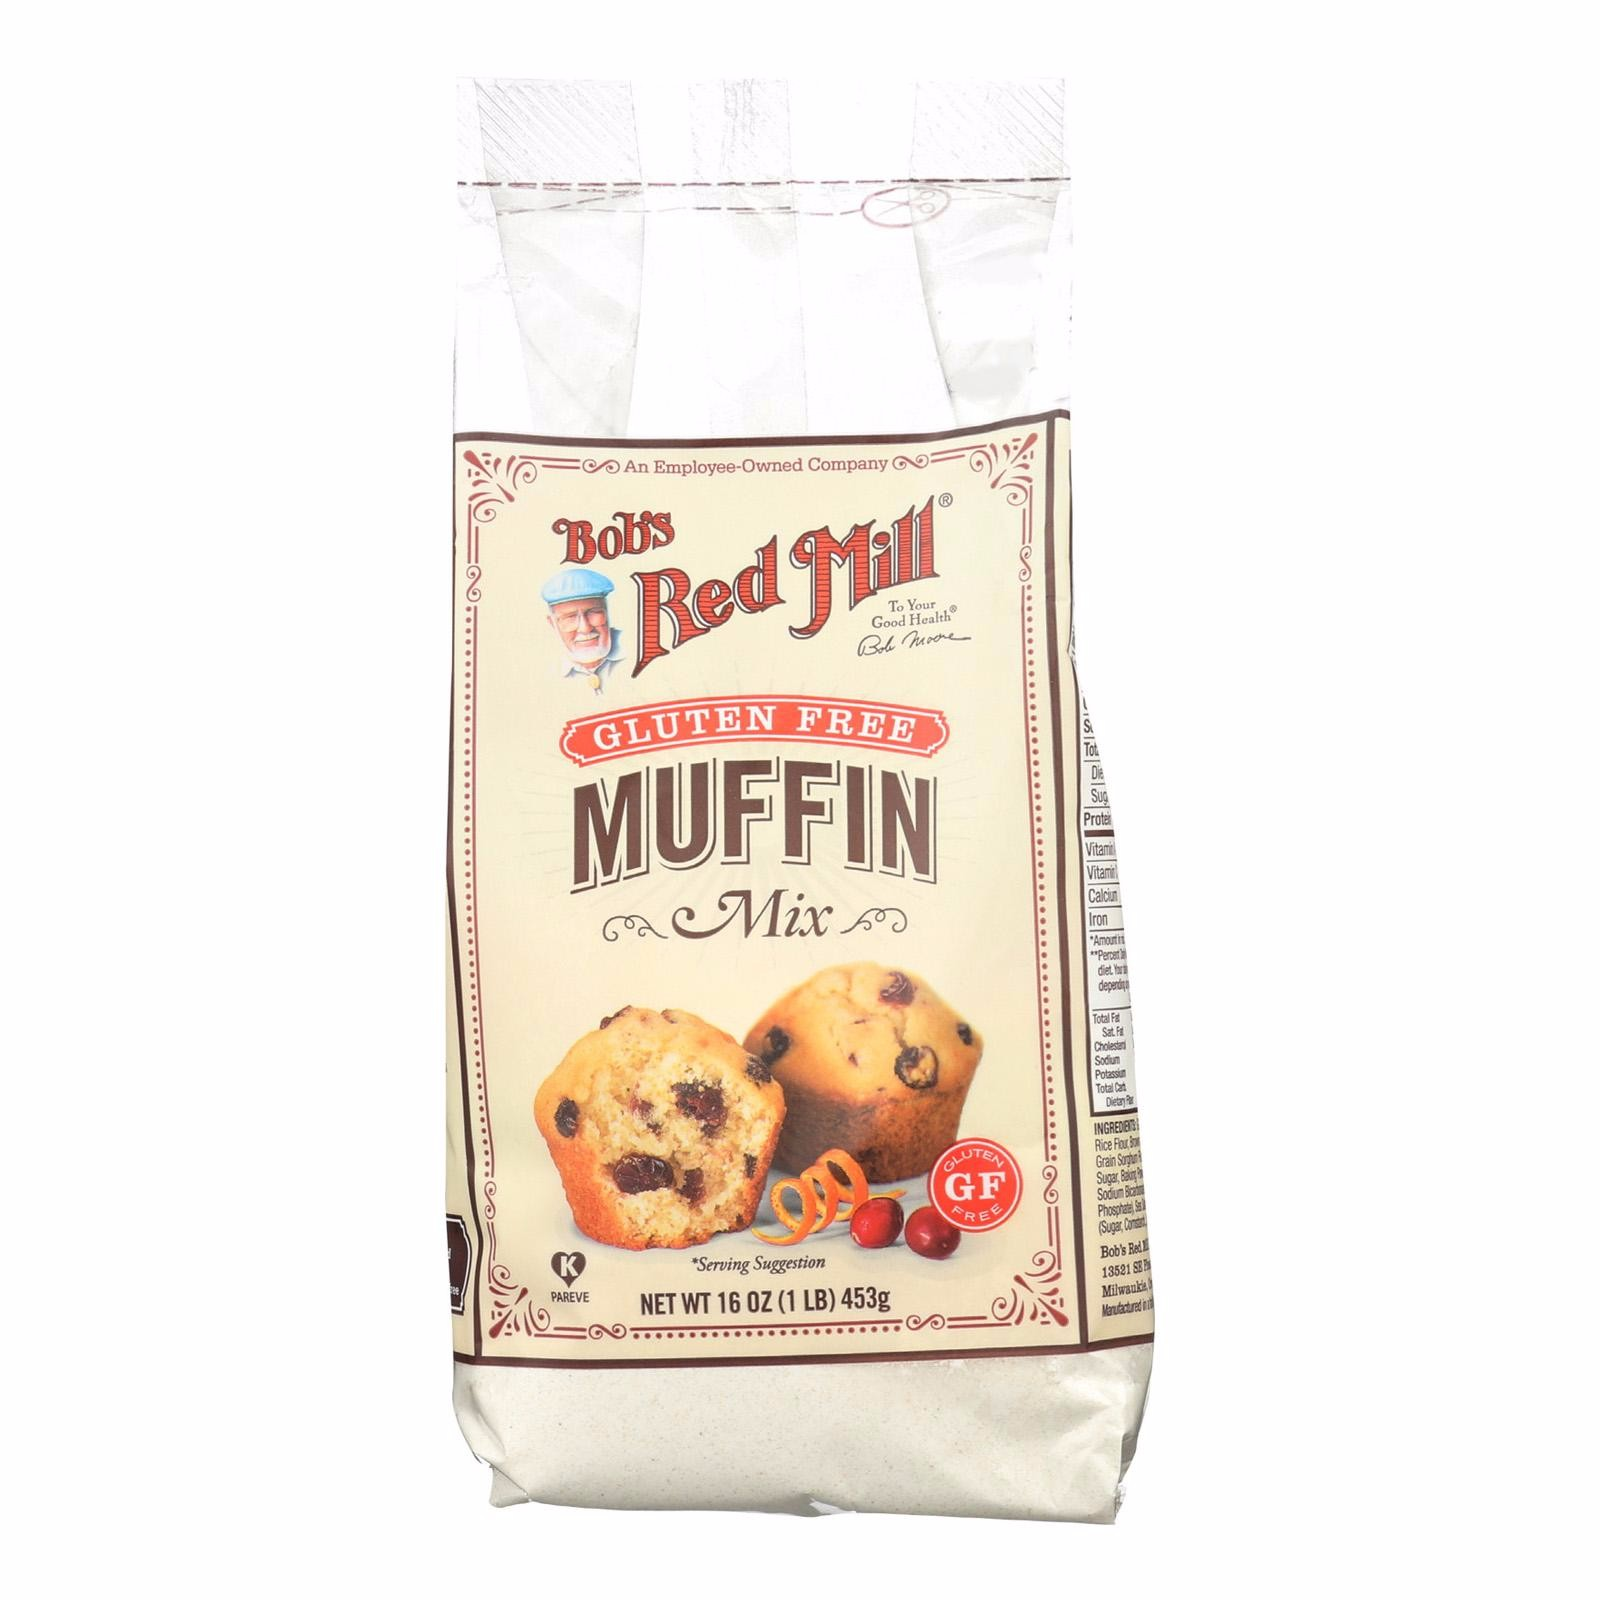 Bob's Red Mill Gluten Free Muffin Mix - 16 Oz - Pack of 4